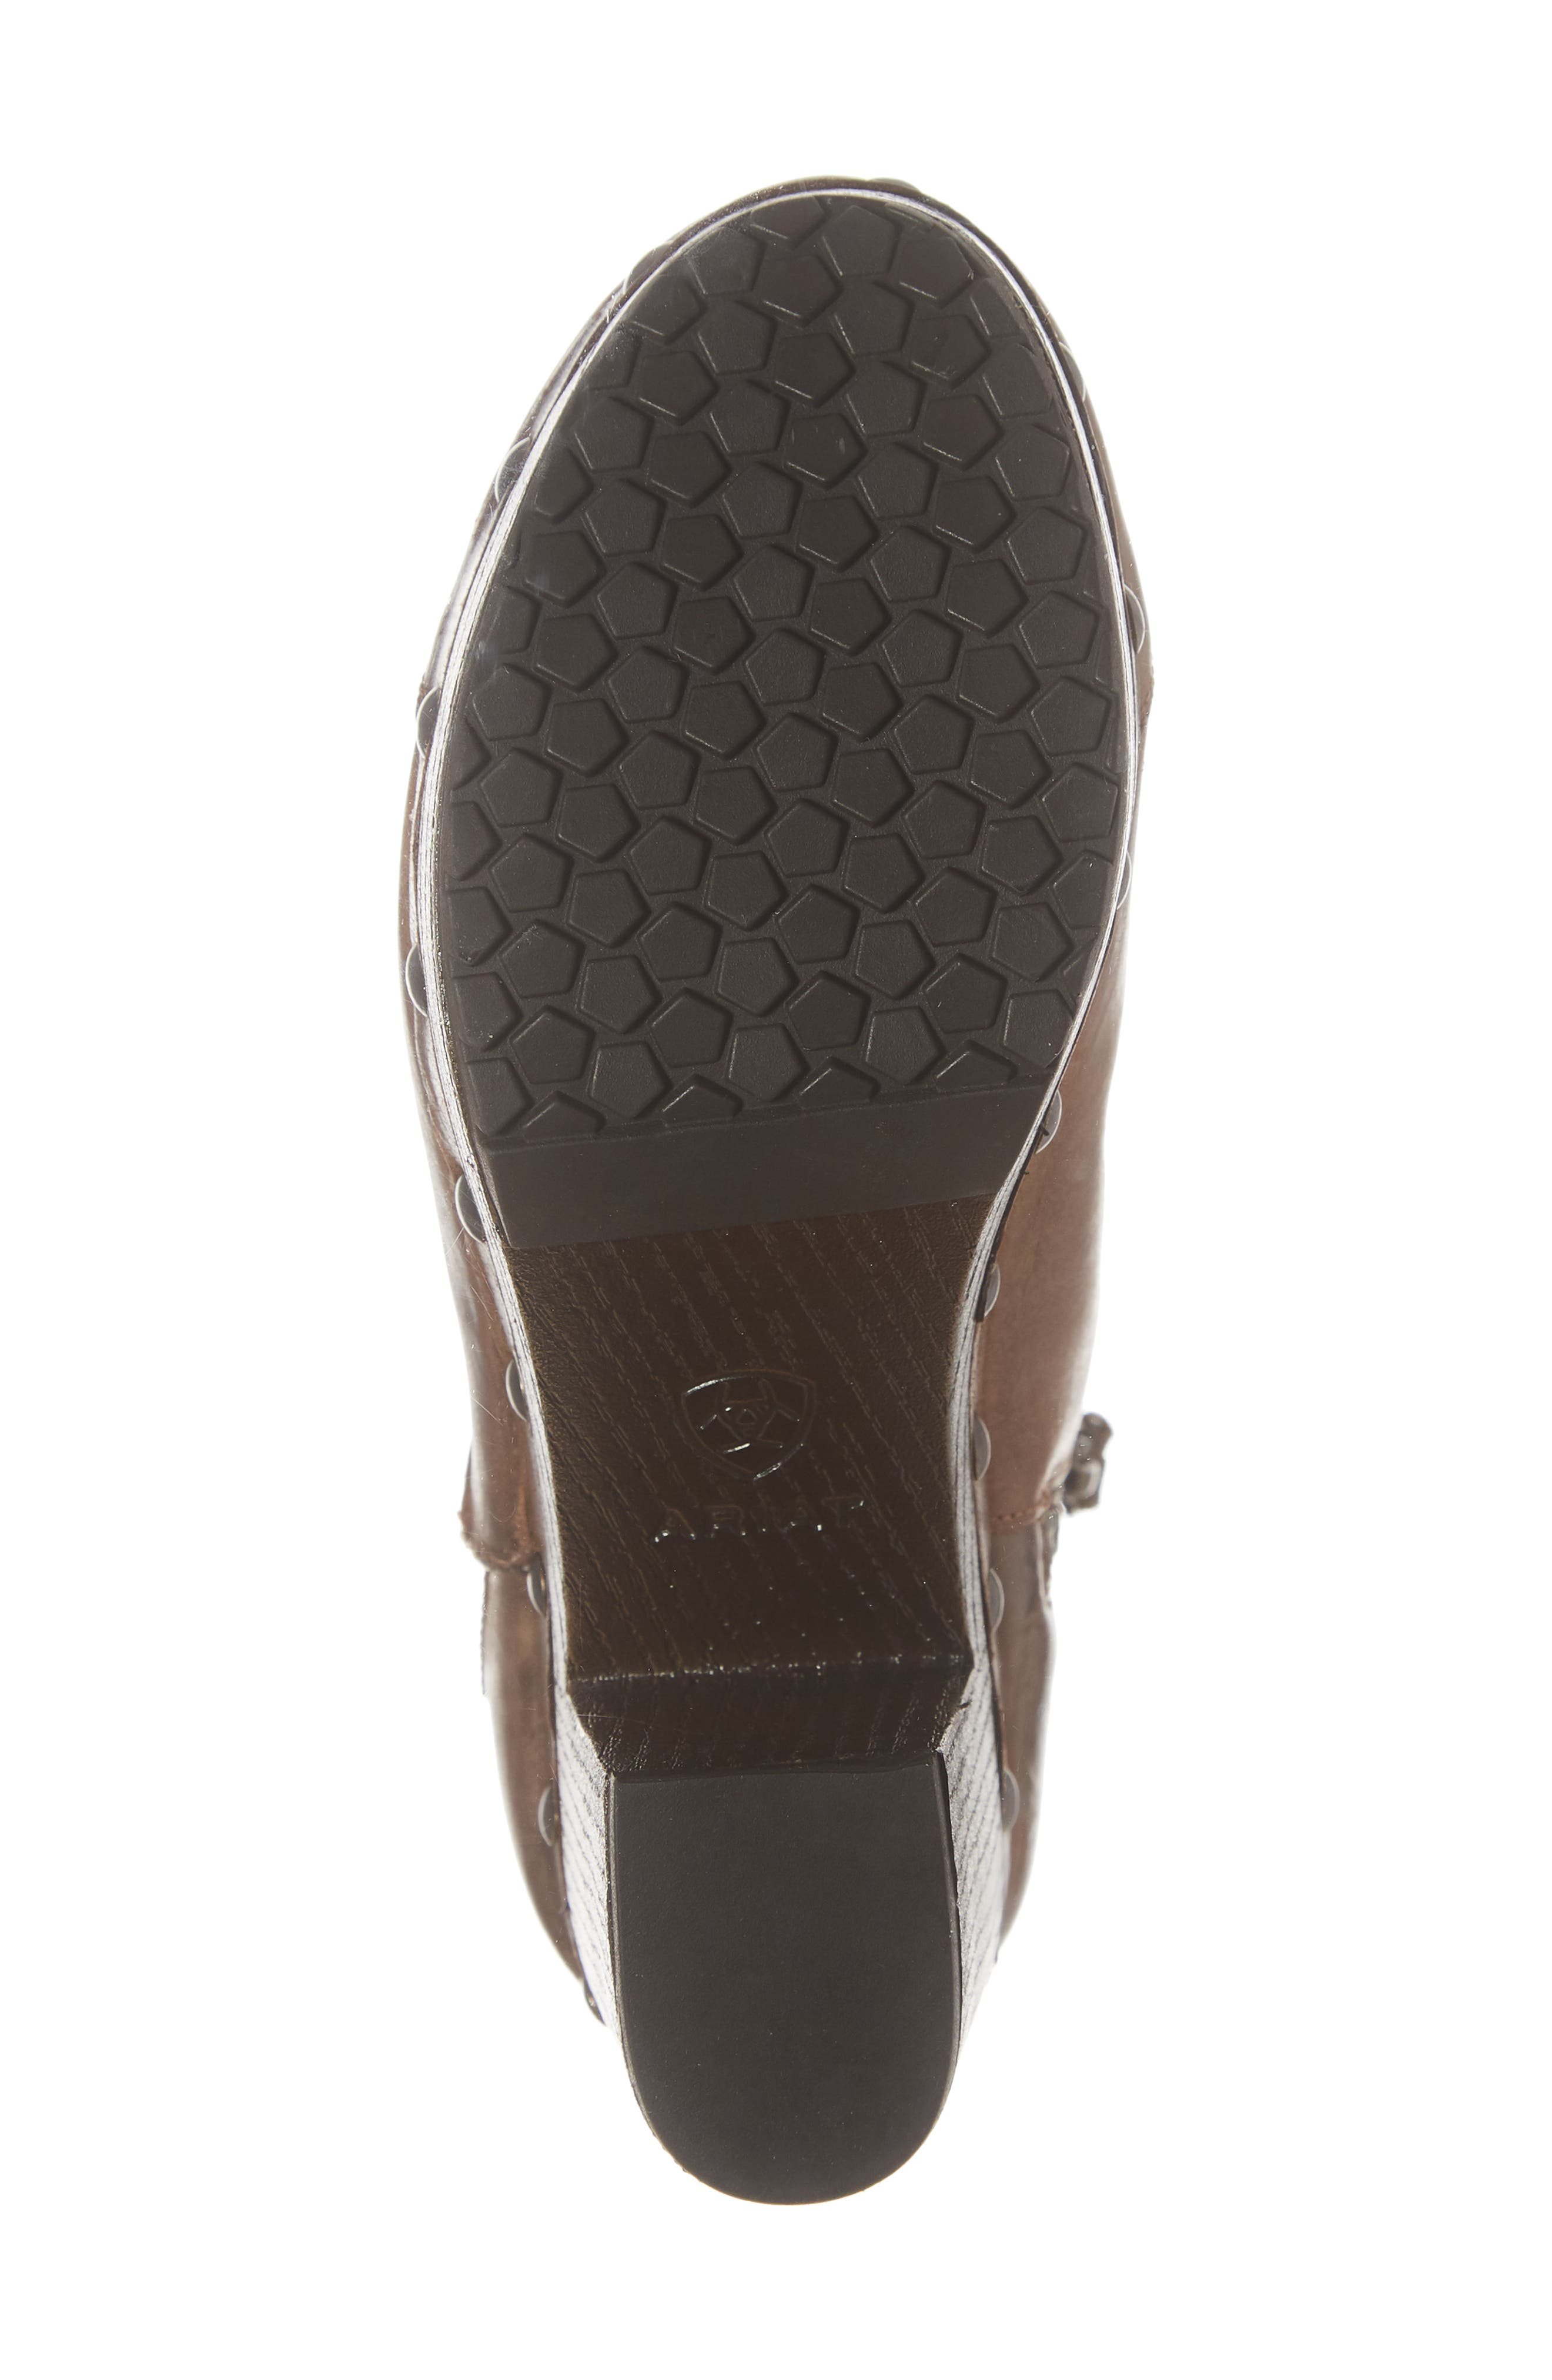 Music City Bootie,                             Alternate thumbnail 6, color,                             CRACKLED TAN LEATHER